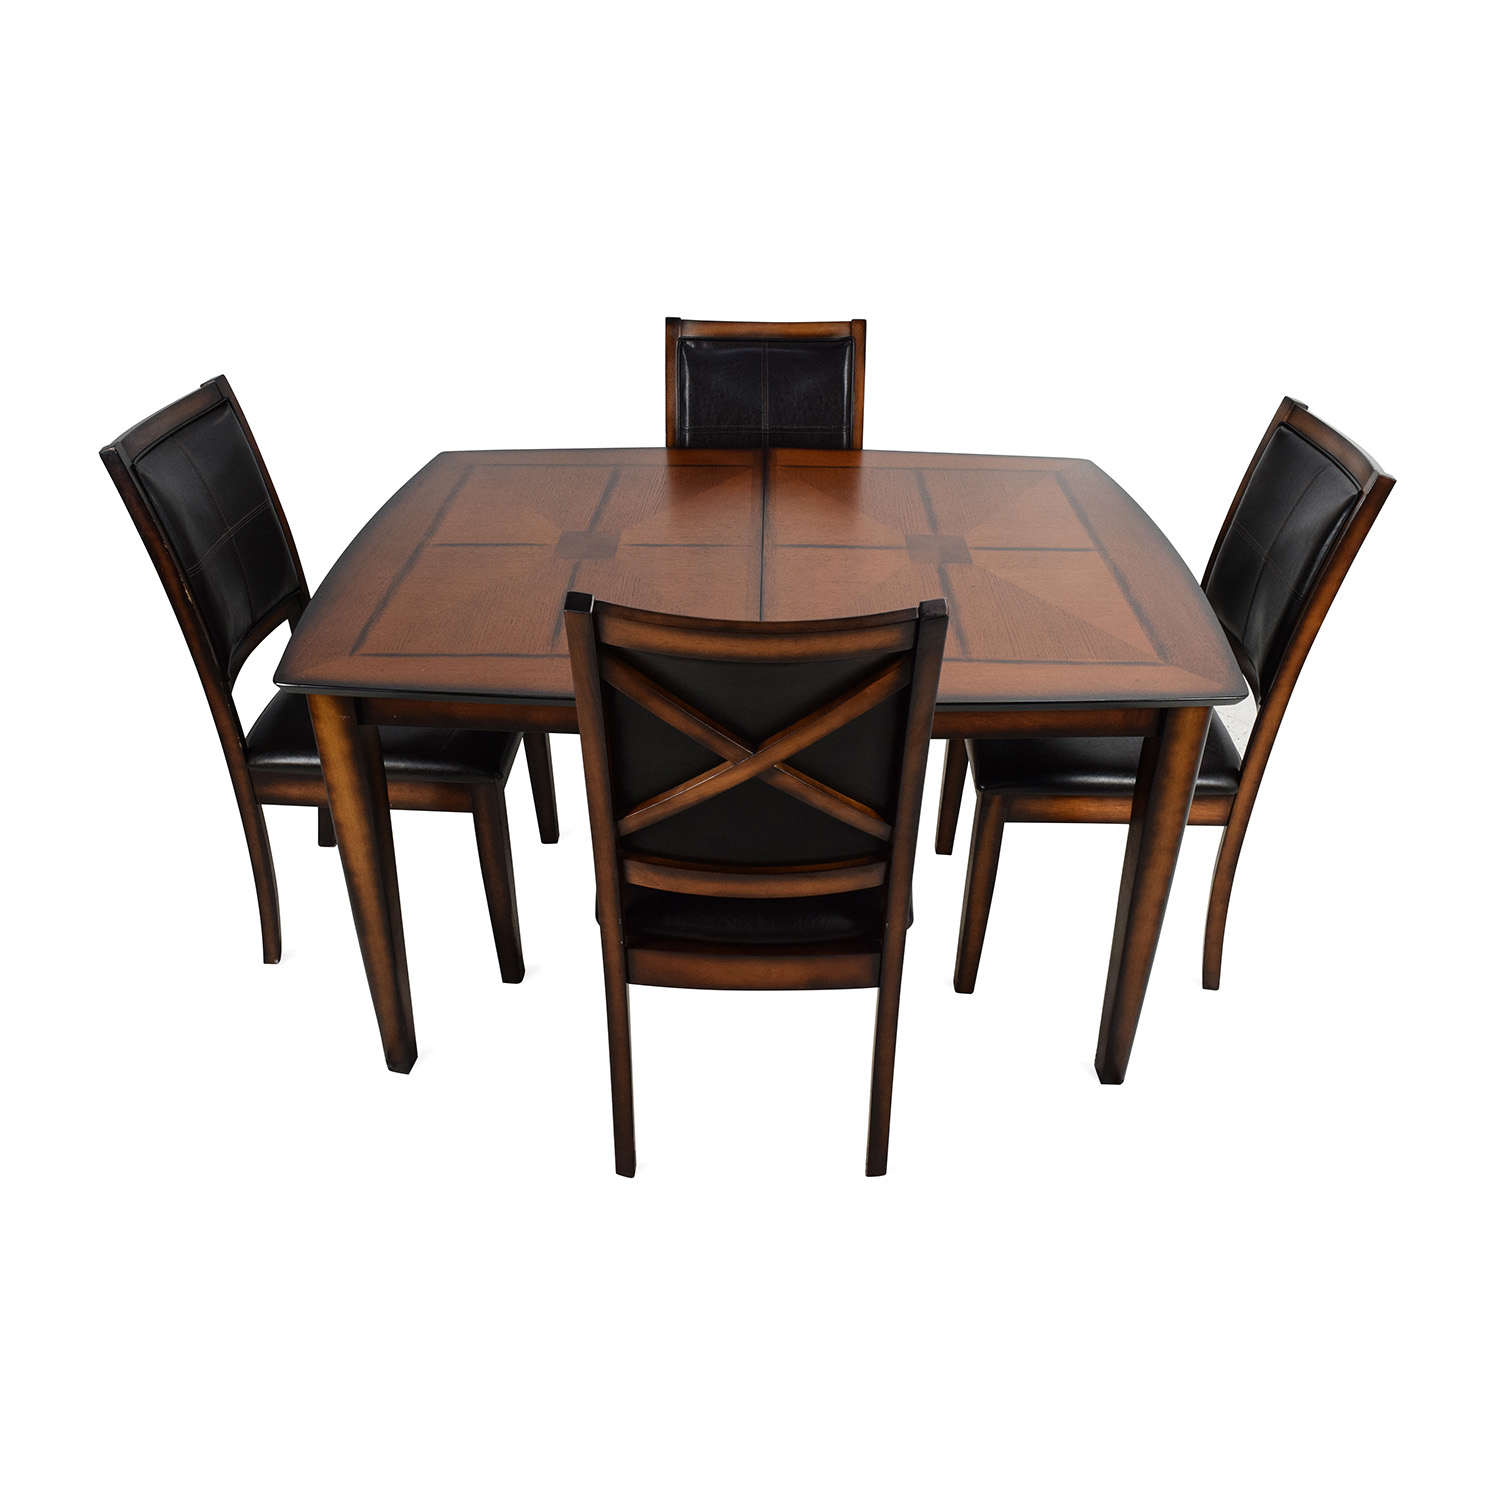 59% Off – Raymour & Flanigan Raymour & Flanigan Denver 5 Piece Extendable  Dining Set / Tables In Most Recent John 4 Piece Dining Sets (Image 2 of 20)